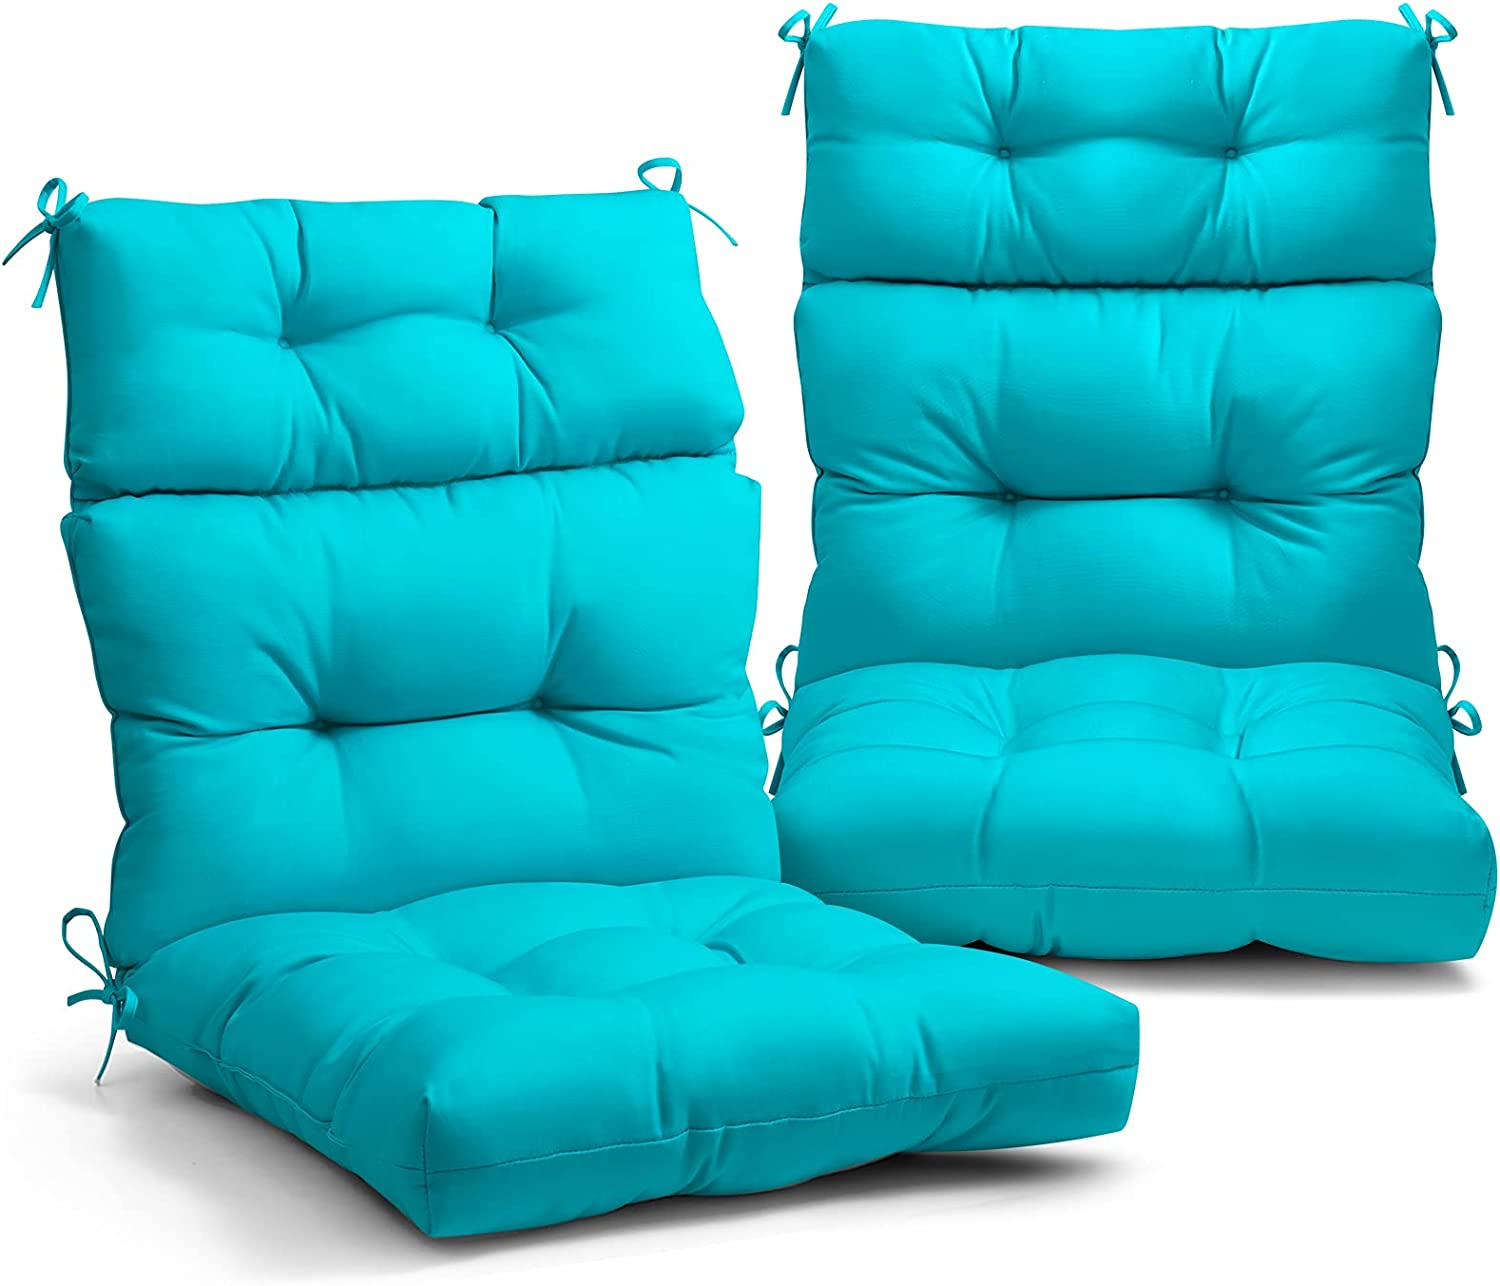 EAGLE PEAK Tufted Outdoor/Indoor High Back Patio Chair Cushion, Set of 2, 44'' x 22'', Blue